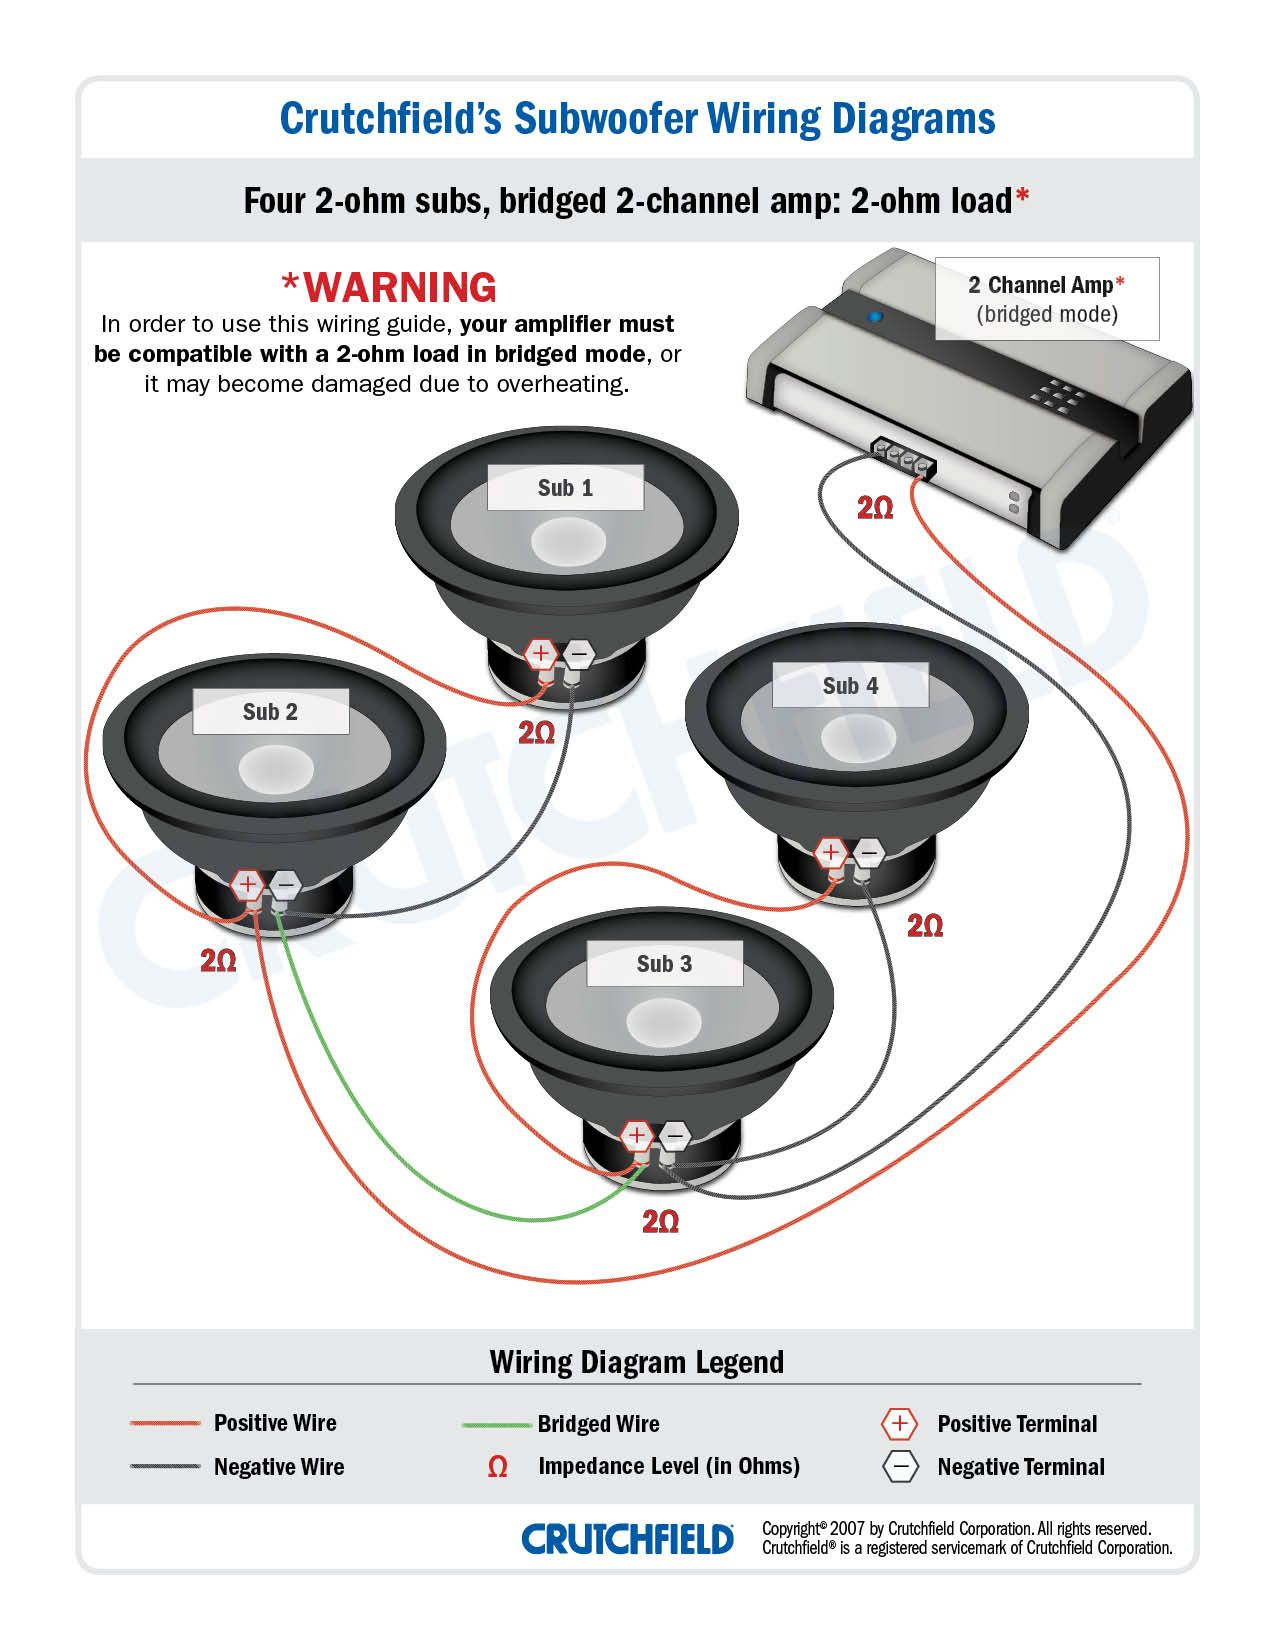 top 10 subwoofer wiring diagram free download 4 svc 2 ohm 2 ch low rh pinterest com Pioneer Wiring Guide Crutchfield Subwoofer Wiring